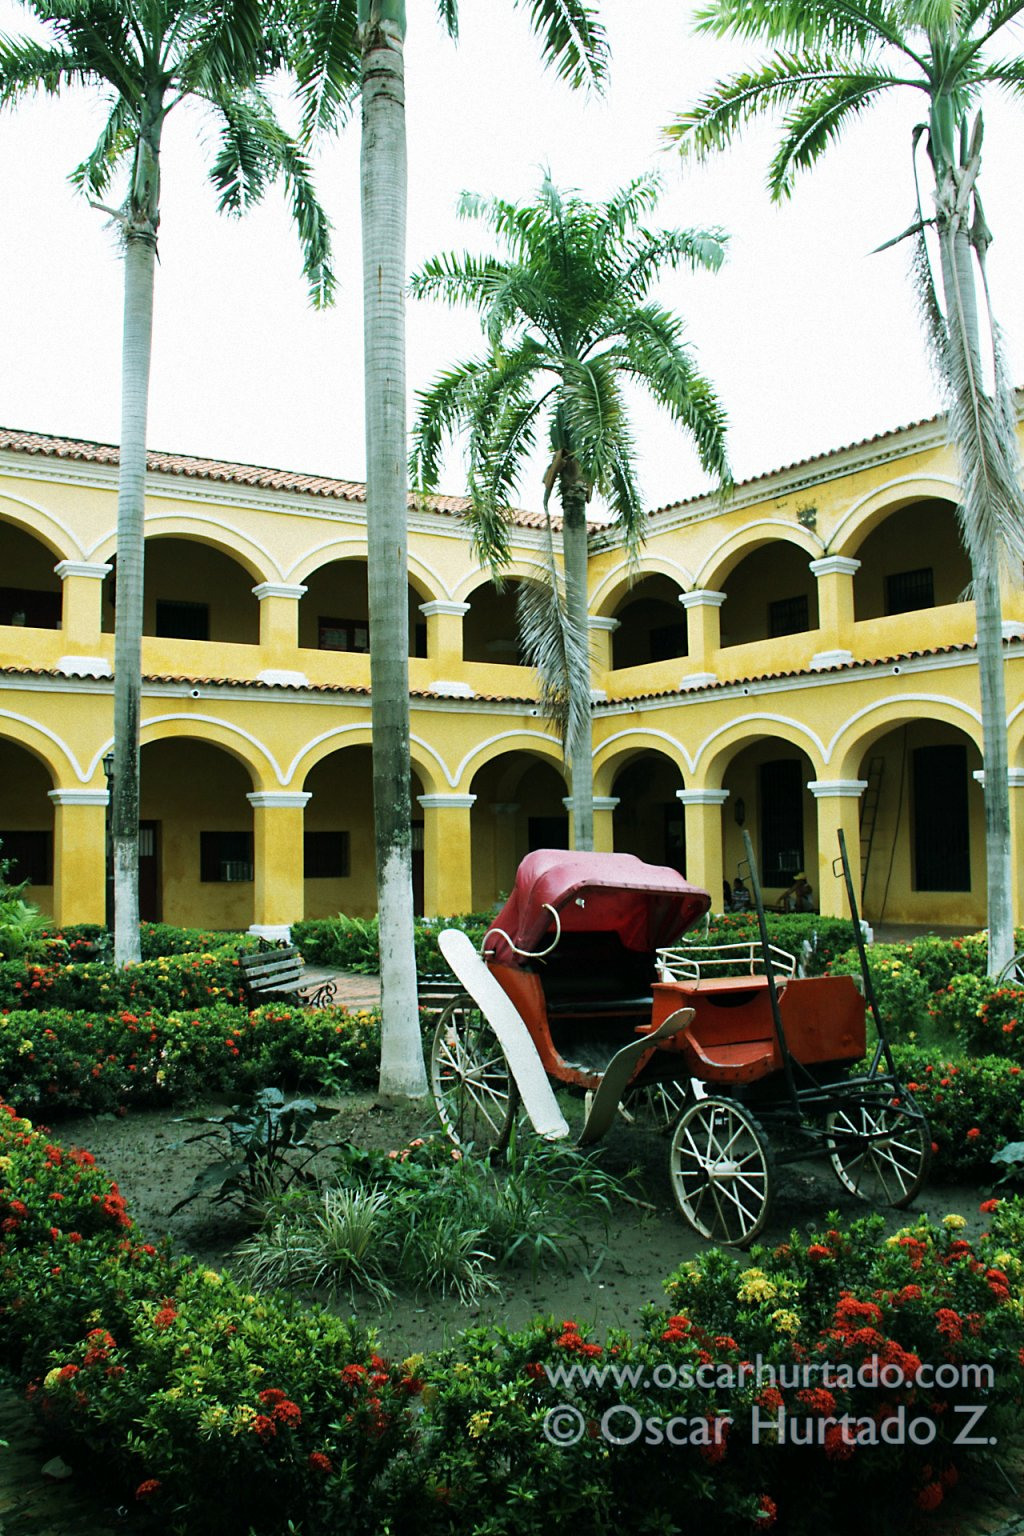 The interior garden of the historical San Carlos convent that now serves as the Town Hall of Mompox, Bolivar